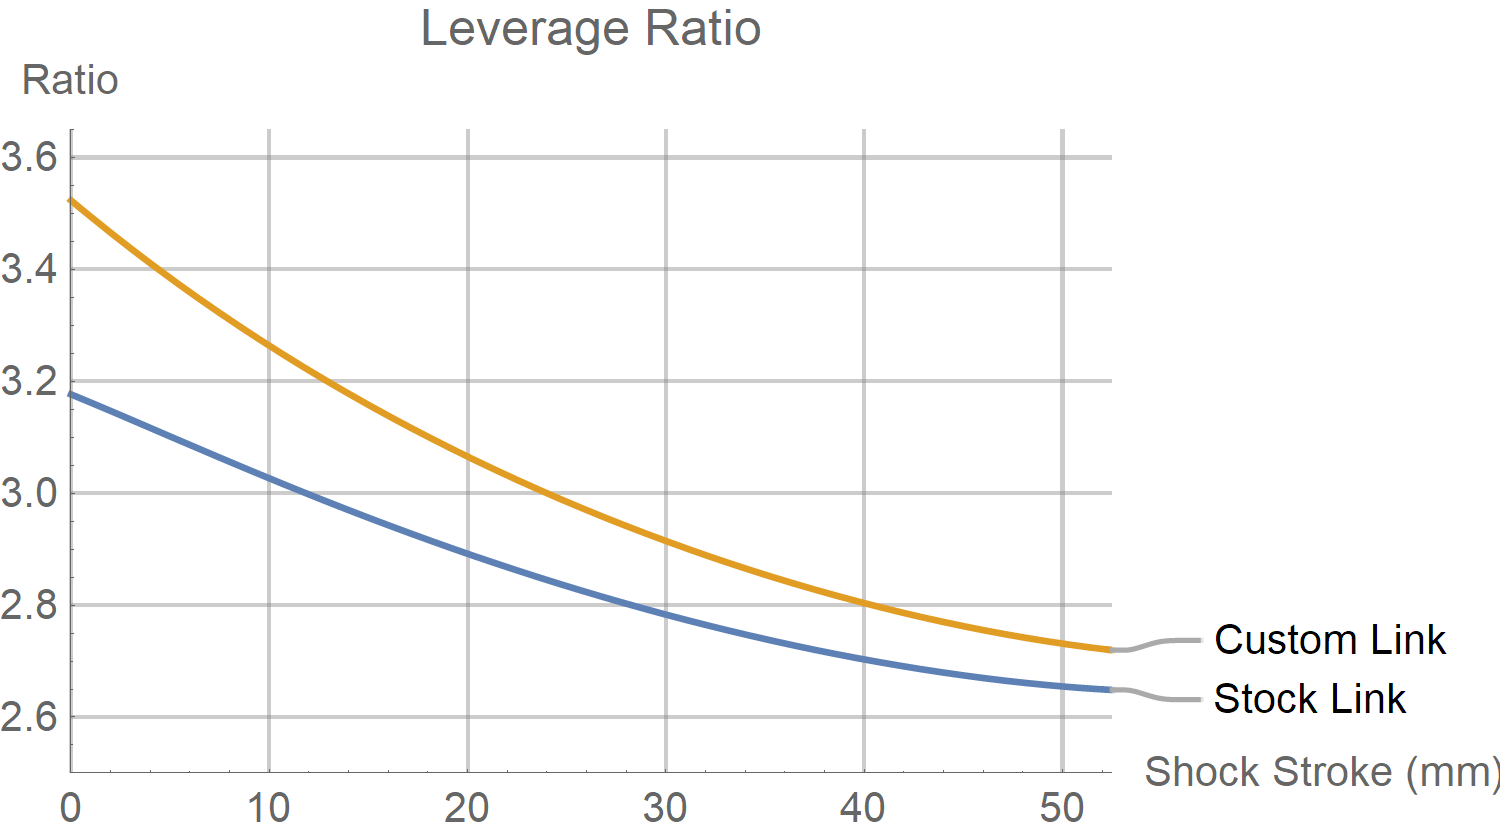 Turbo Levo Leverage Ratio Chart